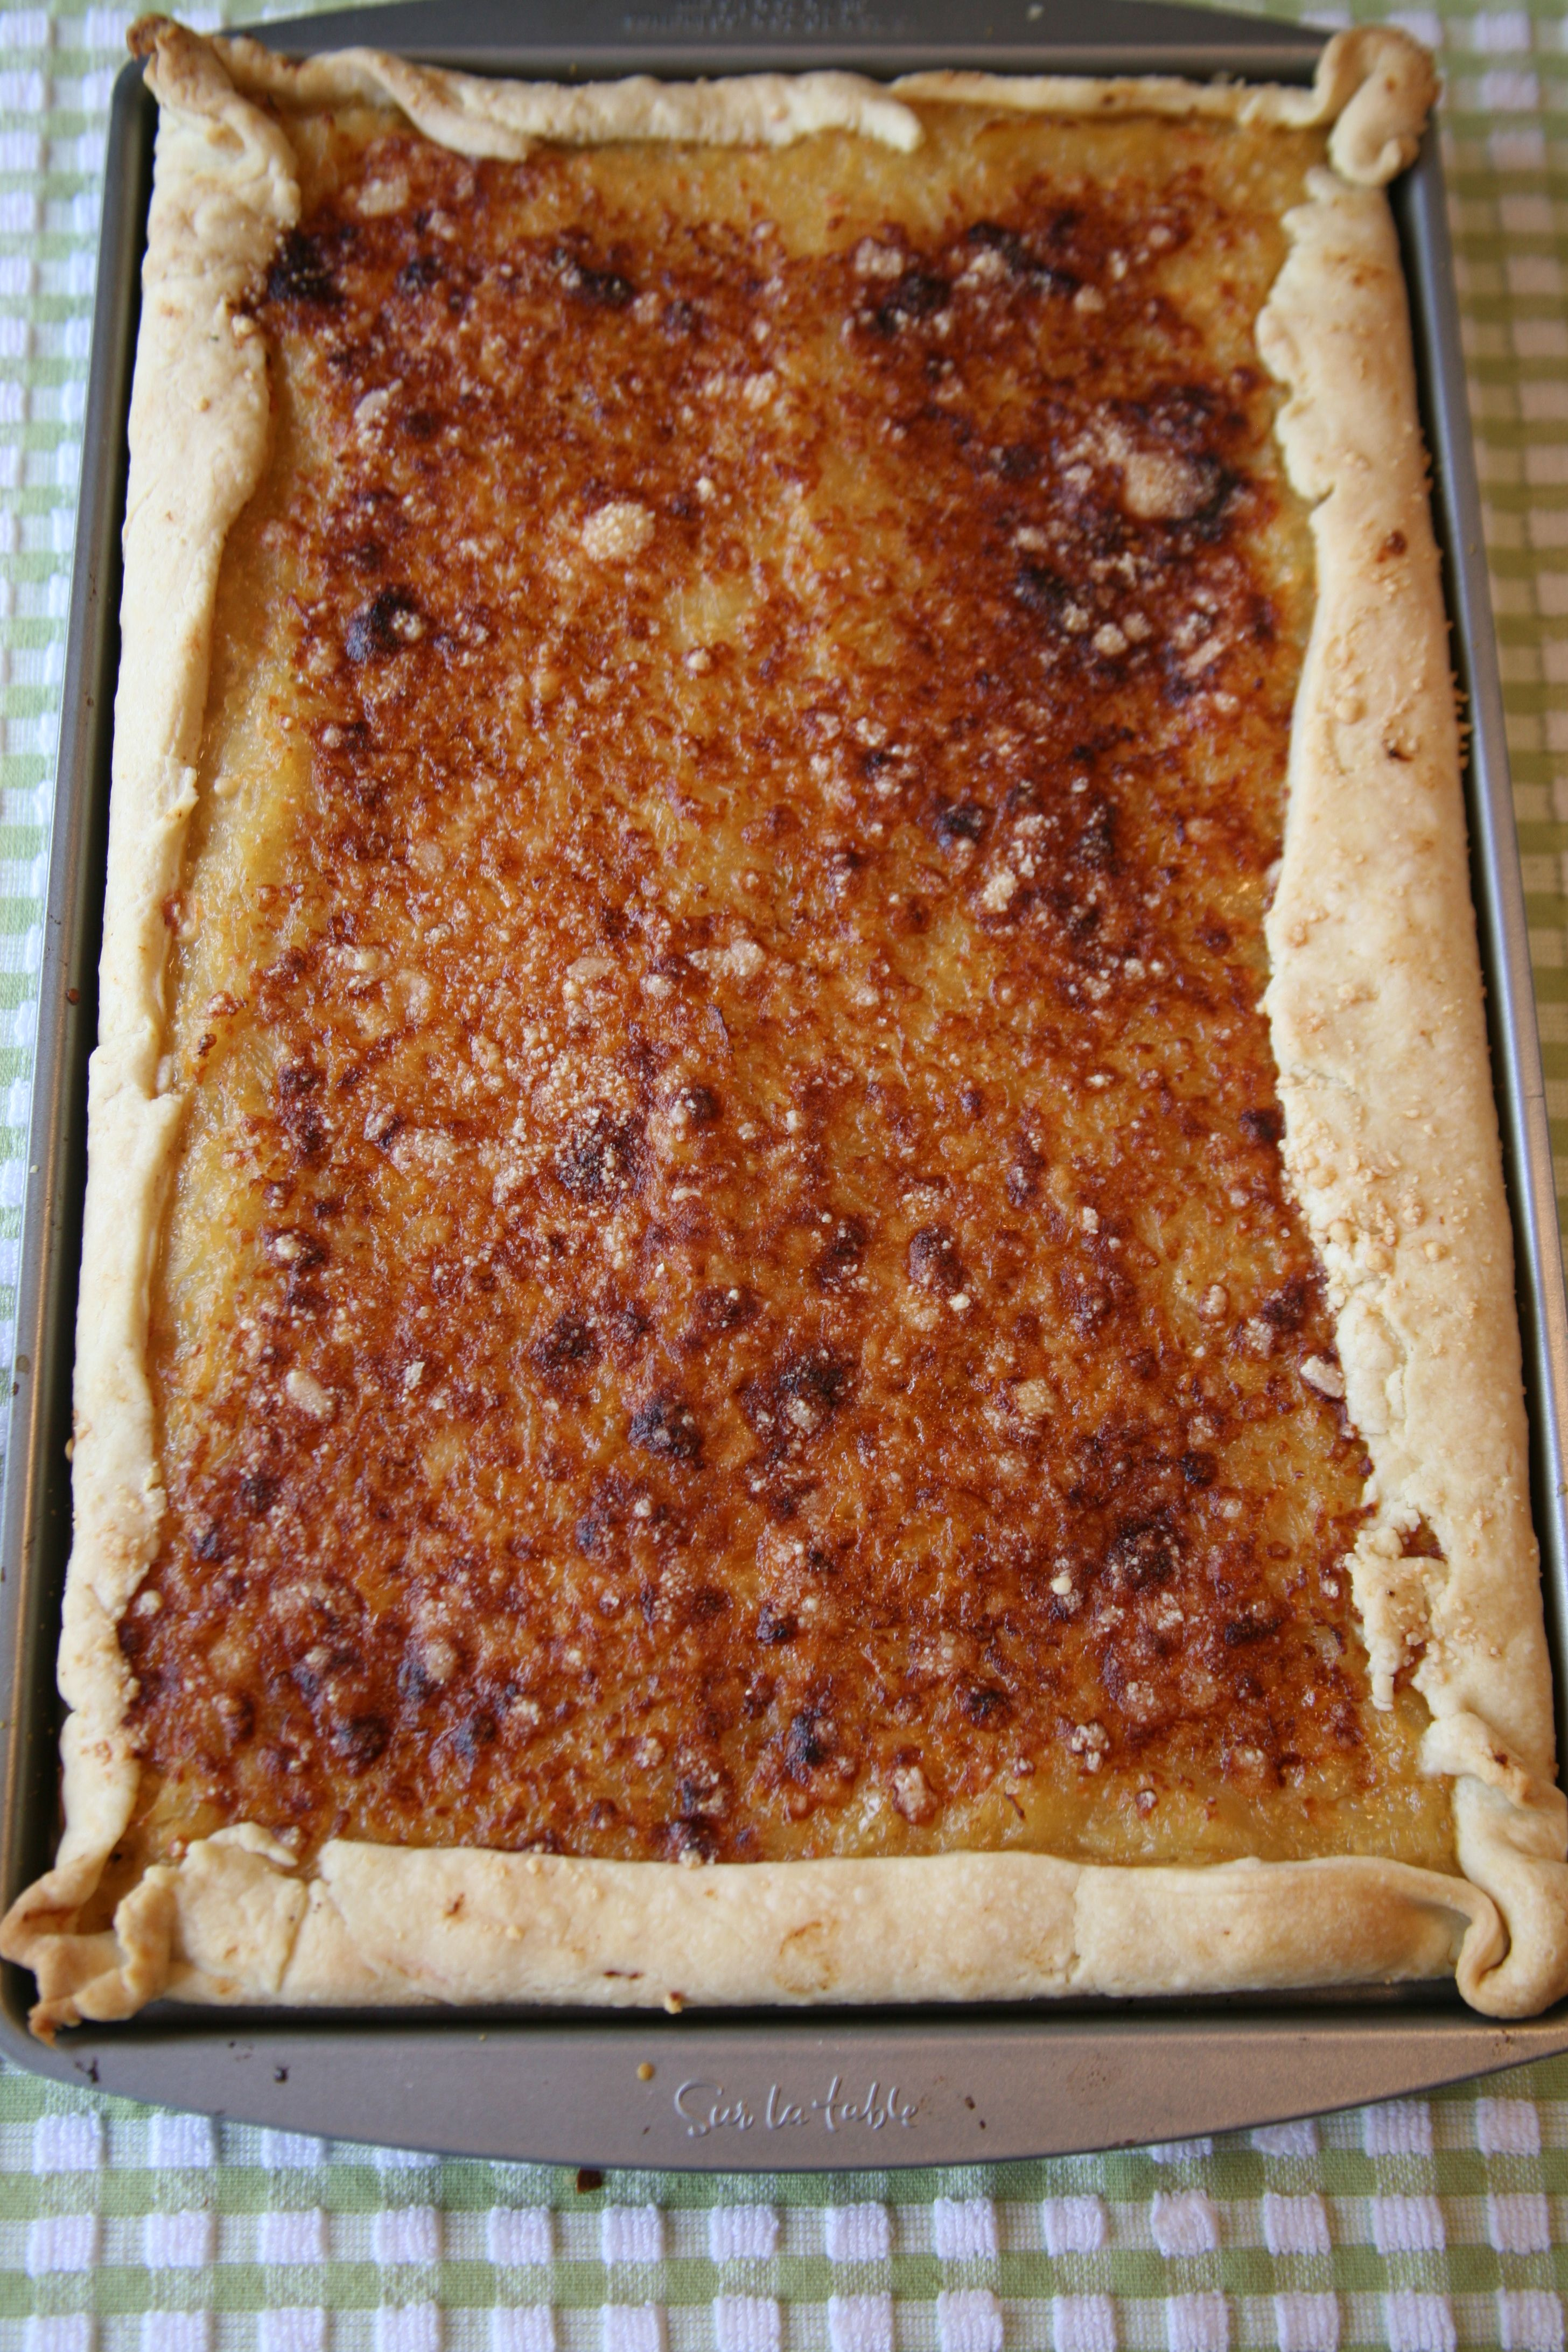 Just wanted to share this delicious recipe from Lidia Bastianich with you - Buon Gusto! ONION TART